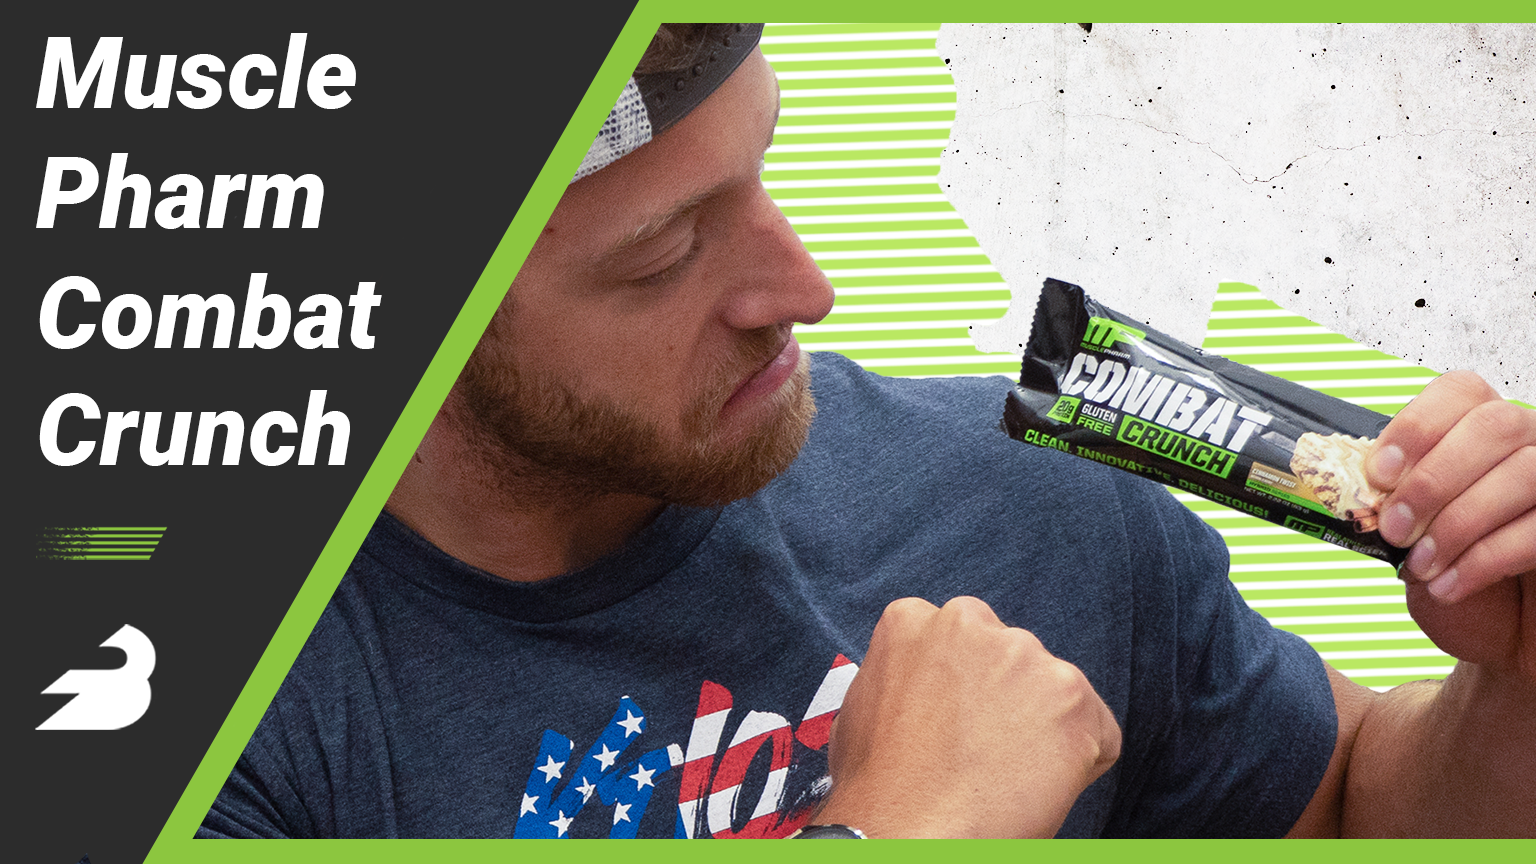 MusclePharmR Combat Crunch Protein Bar Review Are They Too